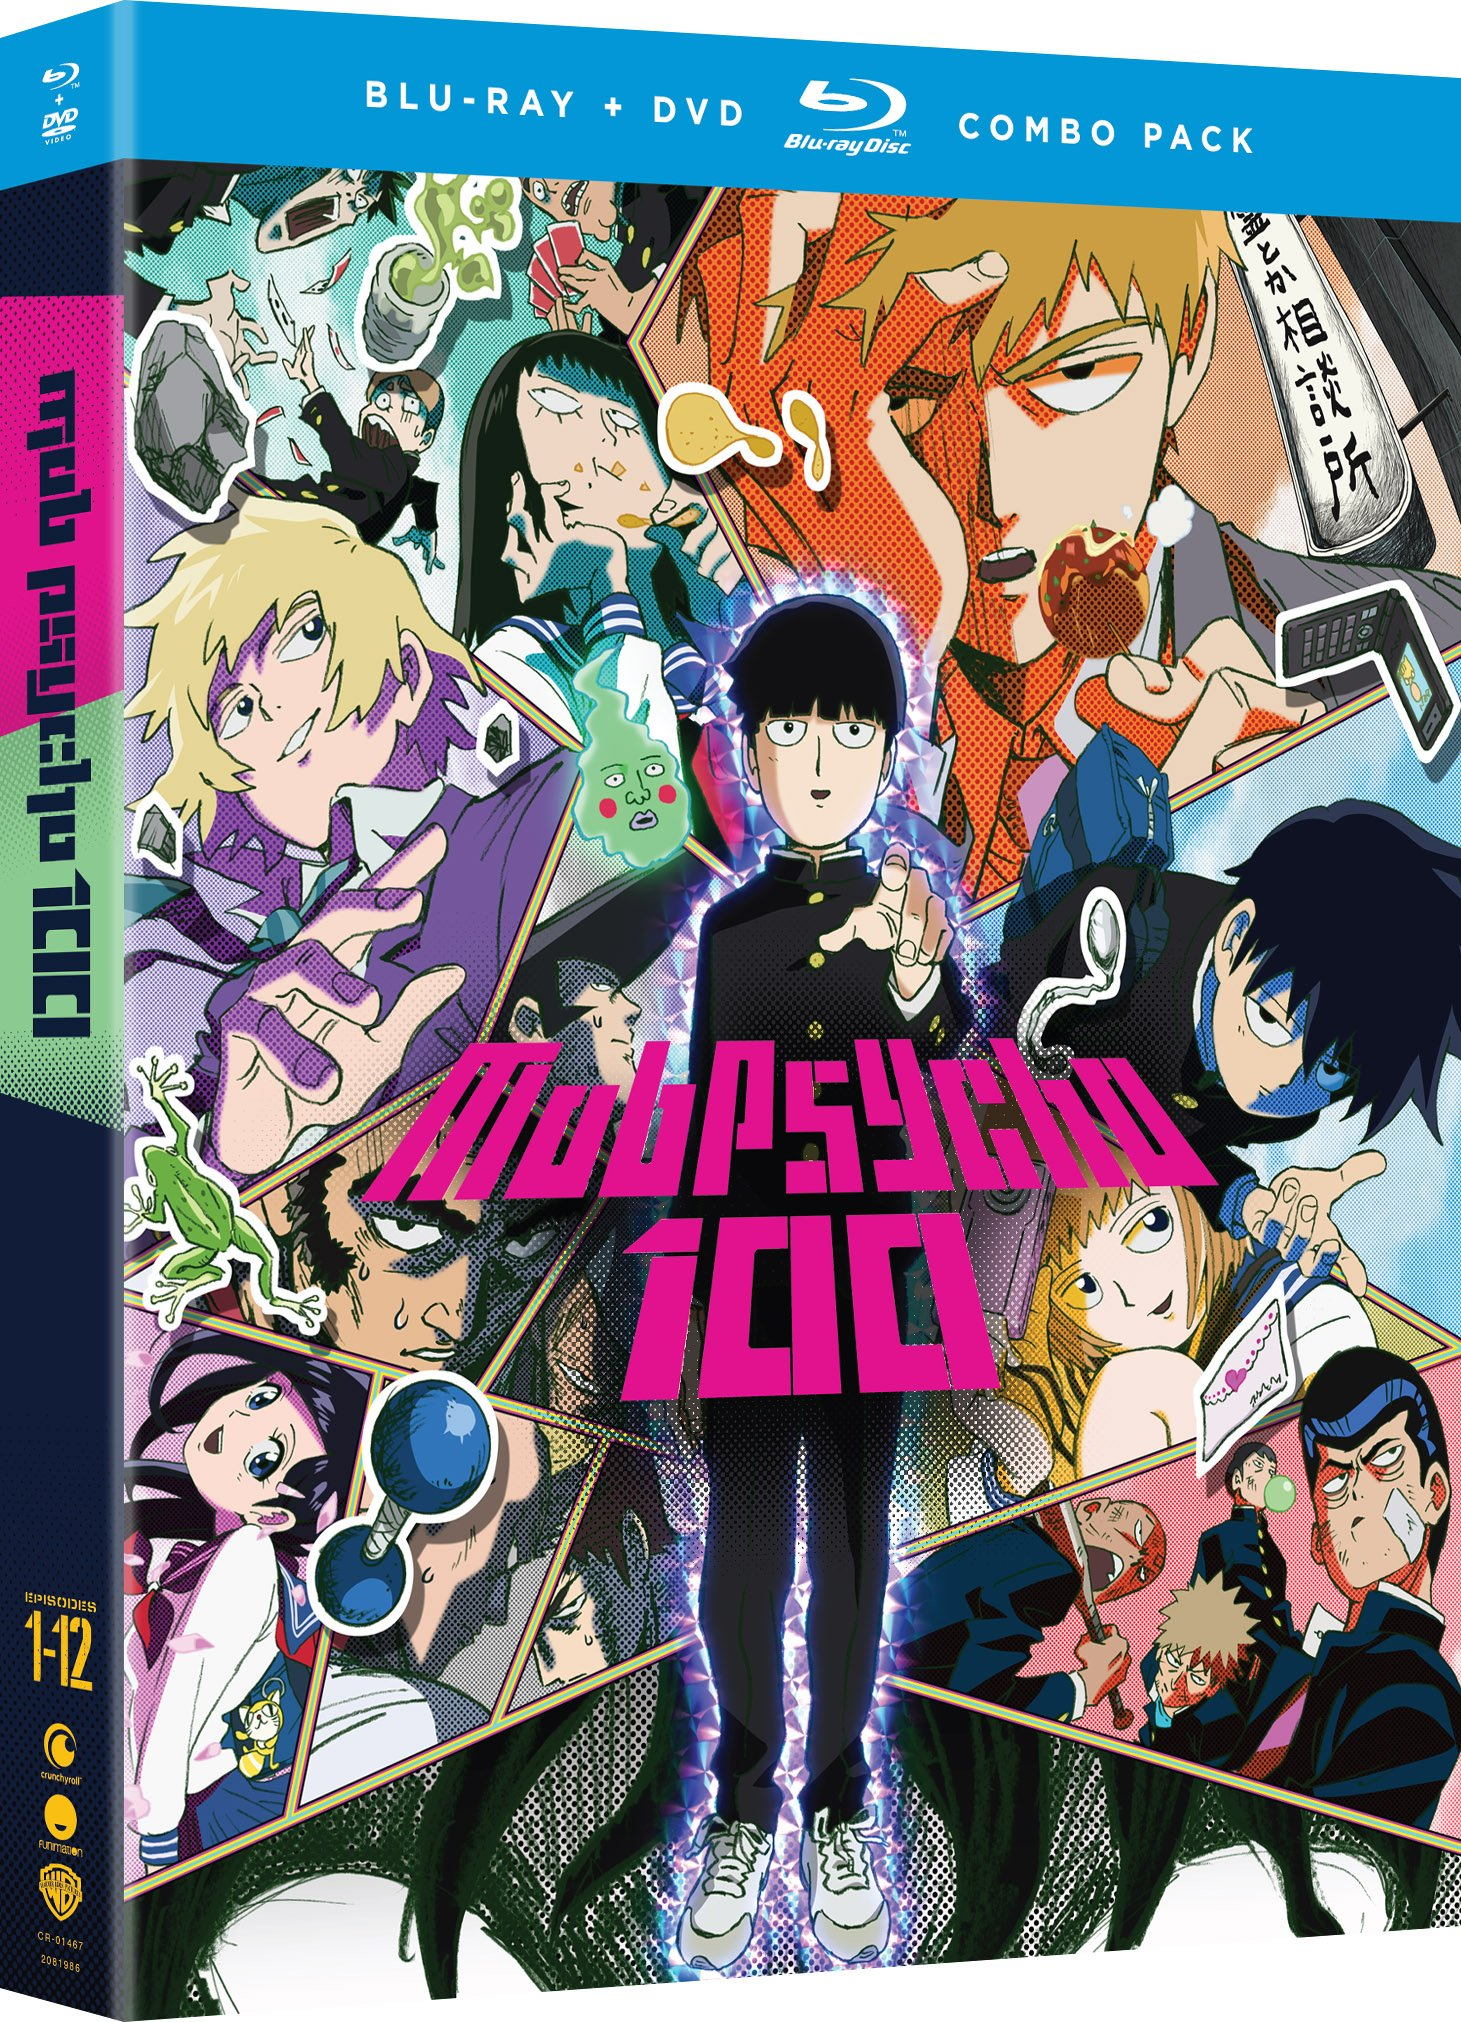 Blu-ray : Mob Psycho 100: The Complete Series (With DVD, Boxed Set, 4 Disc)